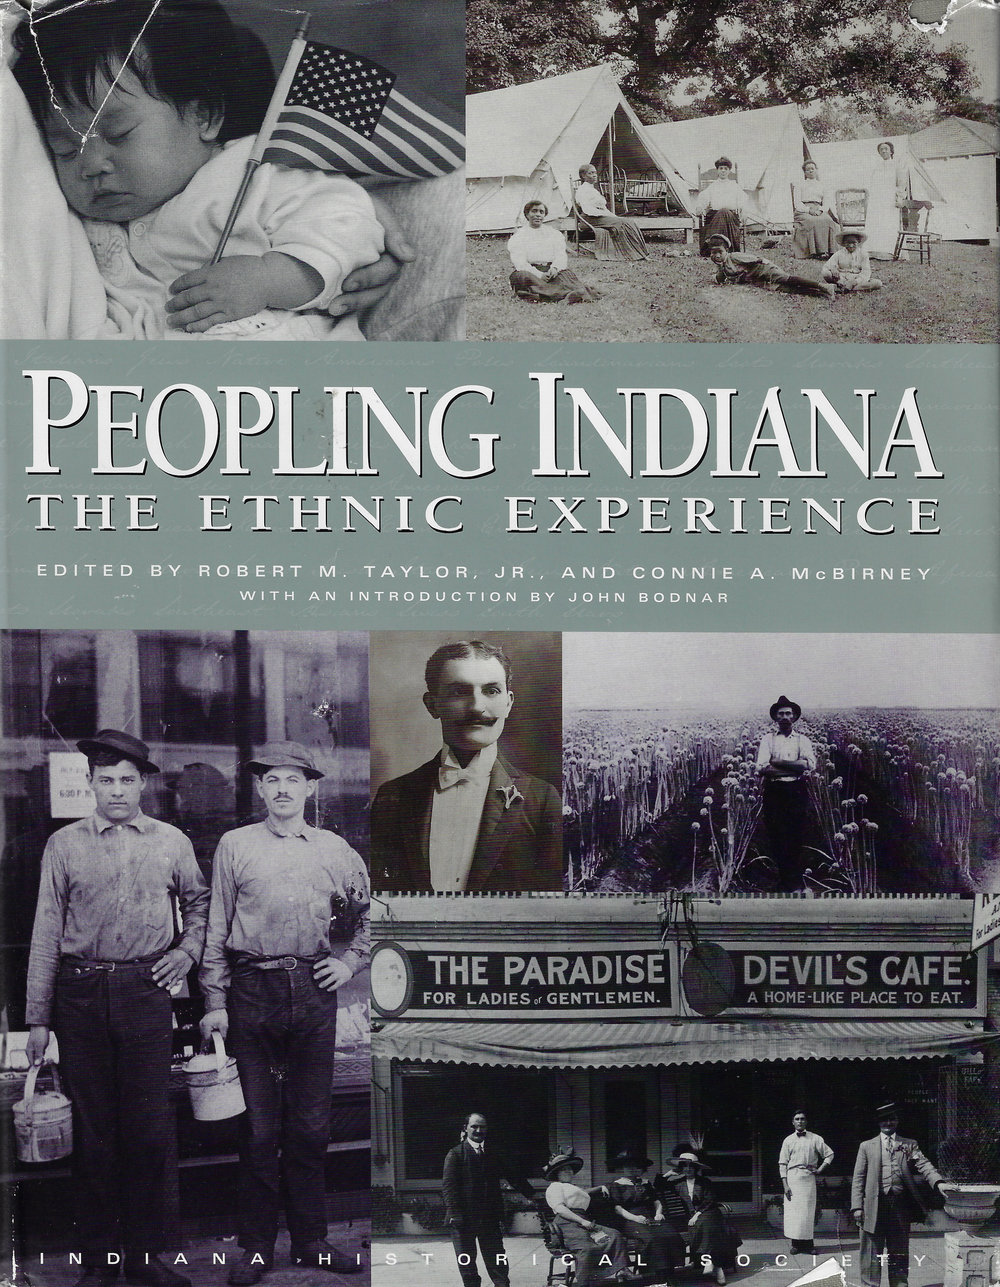 Peopling Indiana: The Ethnic Experience  Edited by Robert M. Taylor Jr. and Connie A. McBirney (1996)